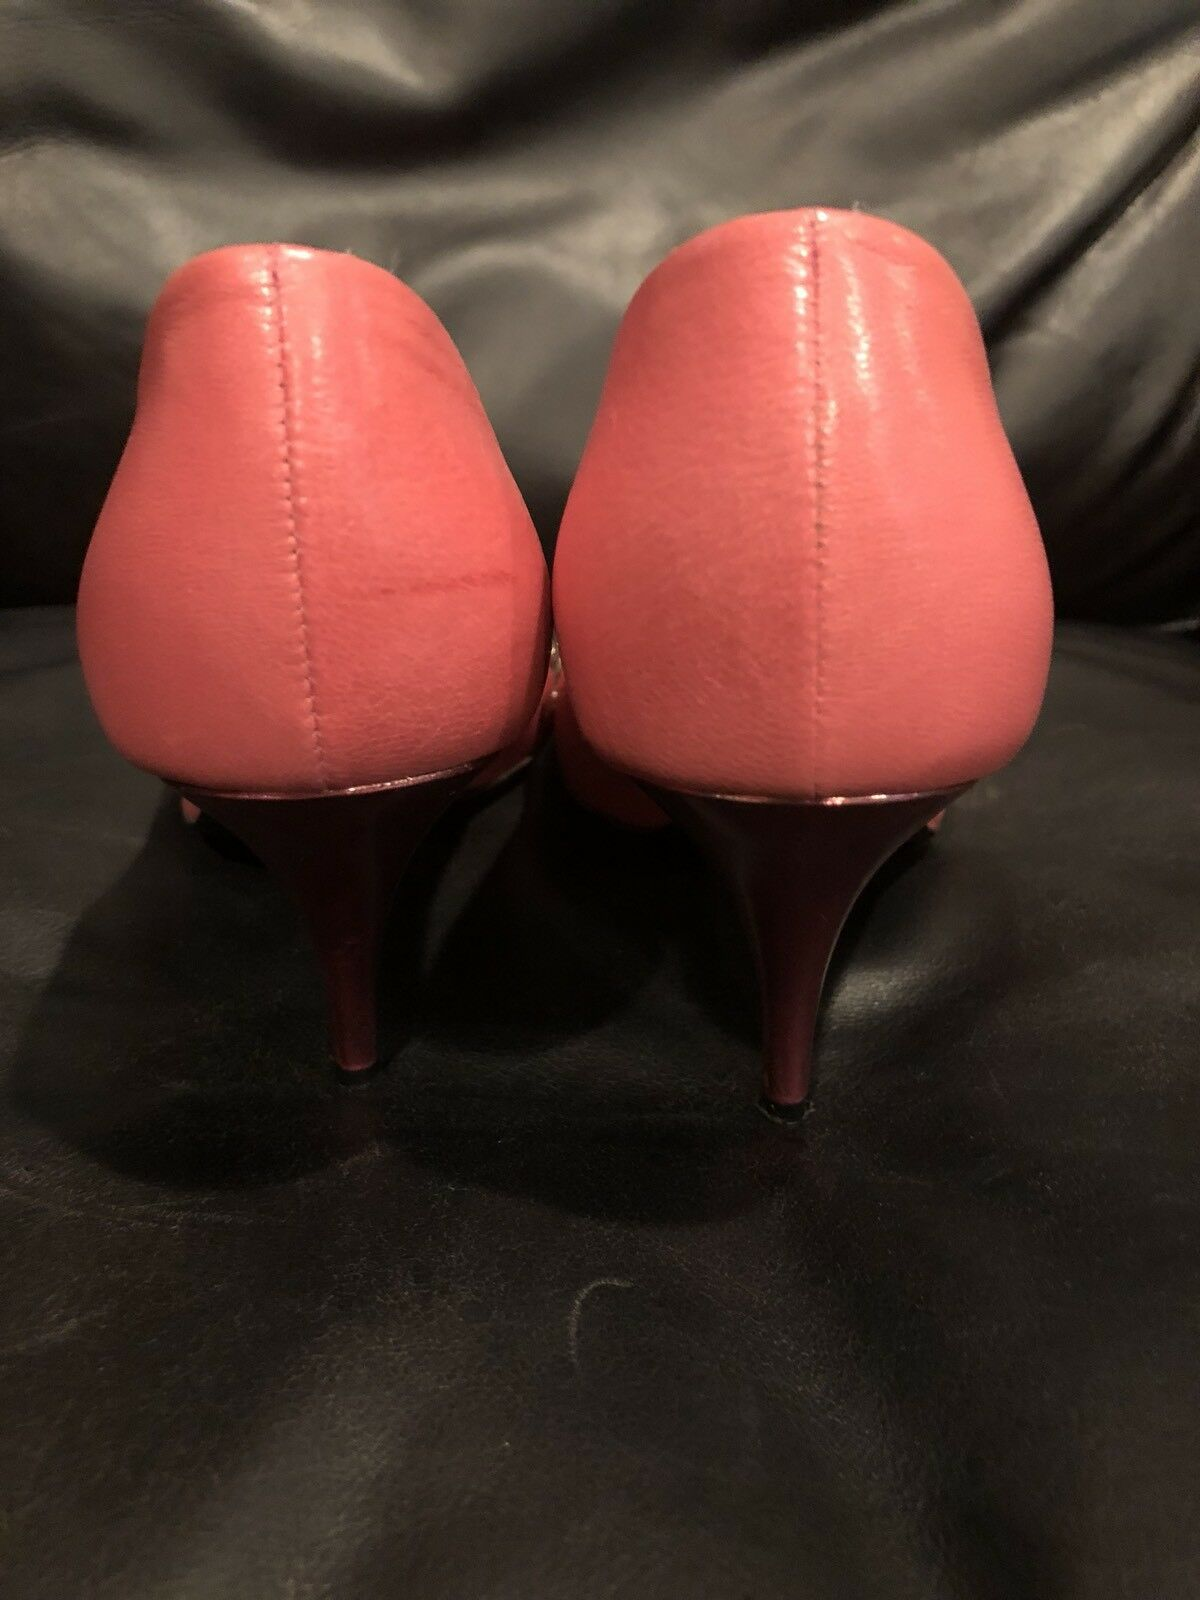 Marc Marc Marc Jacobs Pink Leather Peep Toe Jeweled Heels- Size 7M 91d032